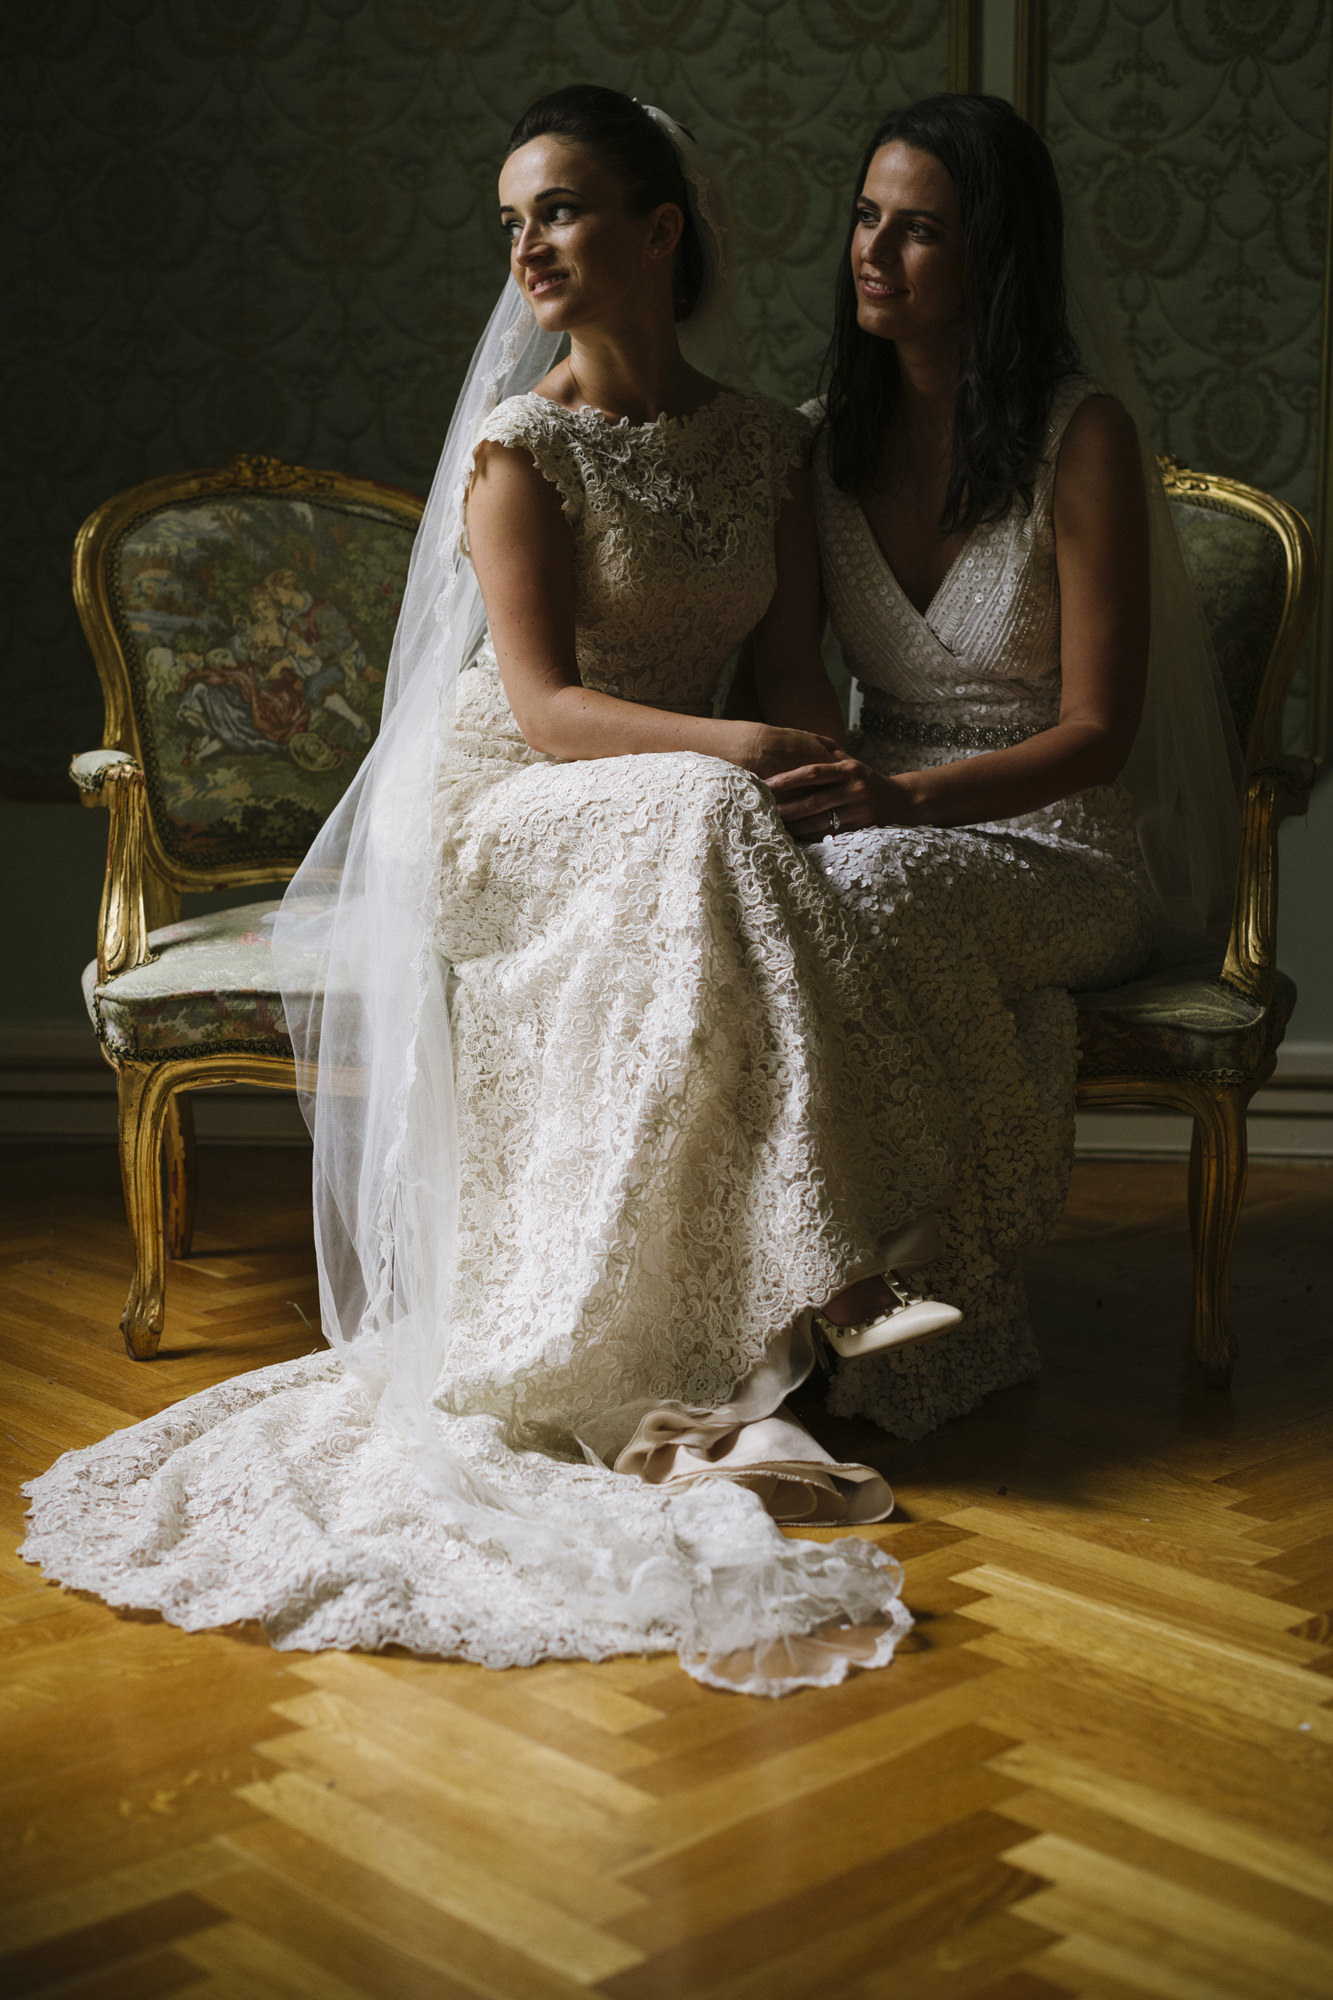 Brides in gorgeous wedding gowns, photo by Thierry Joubert